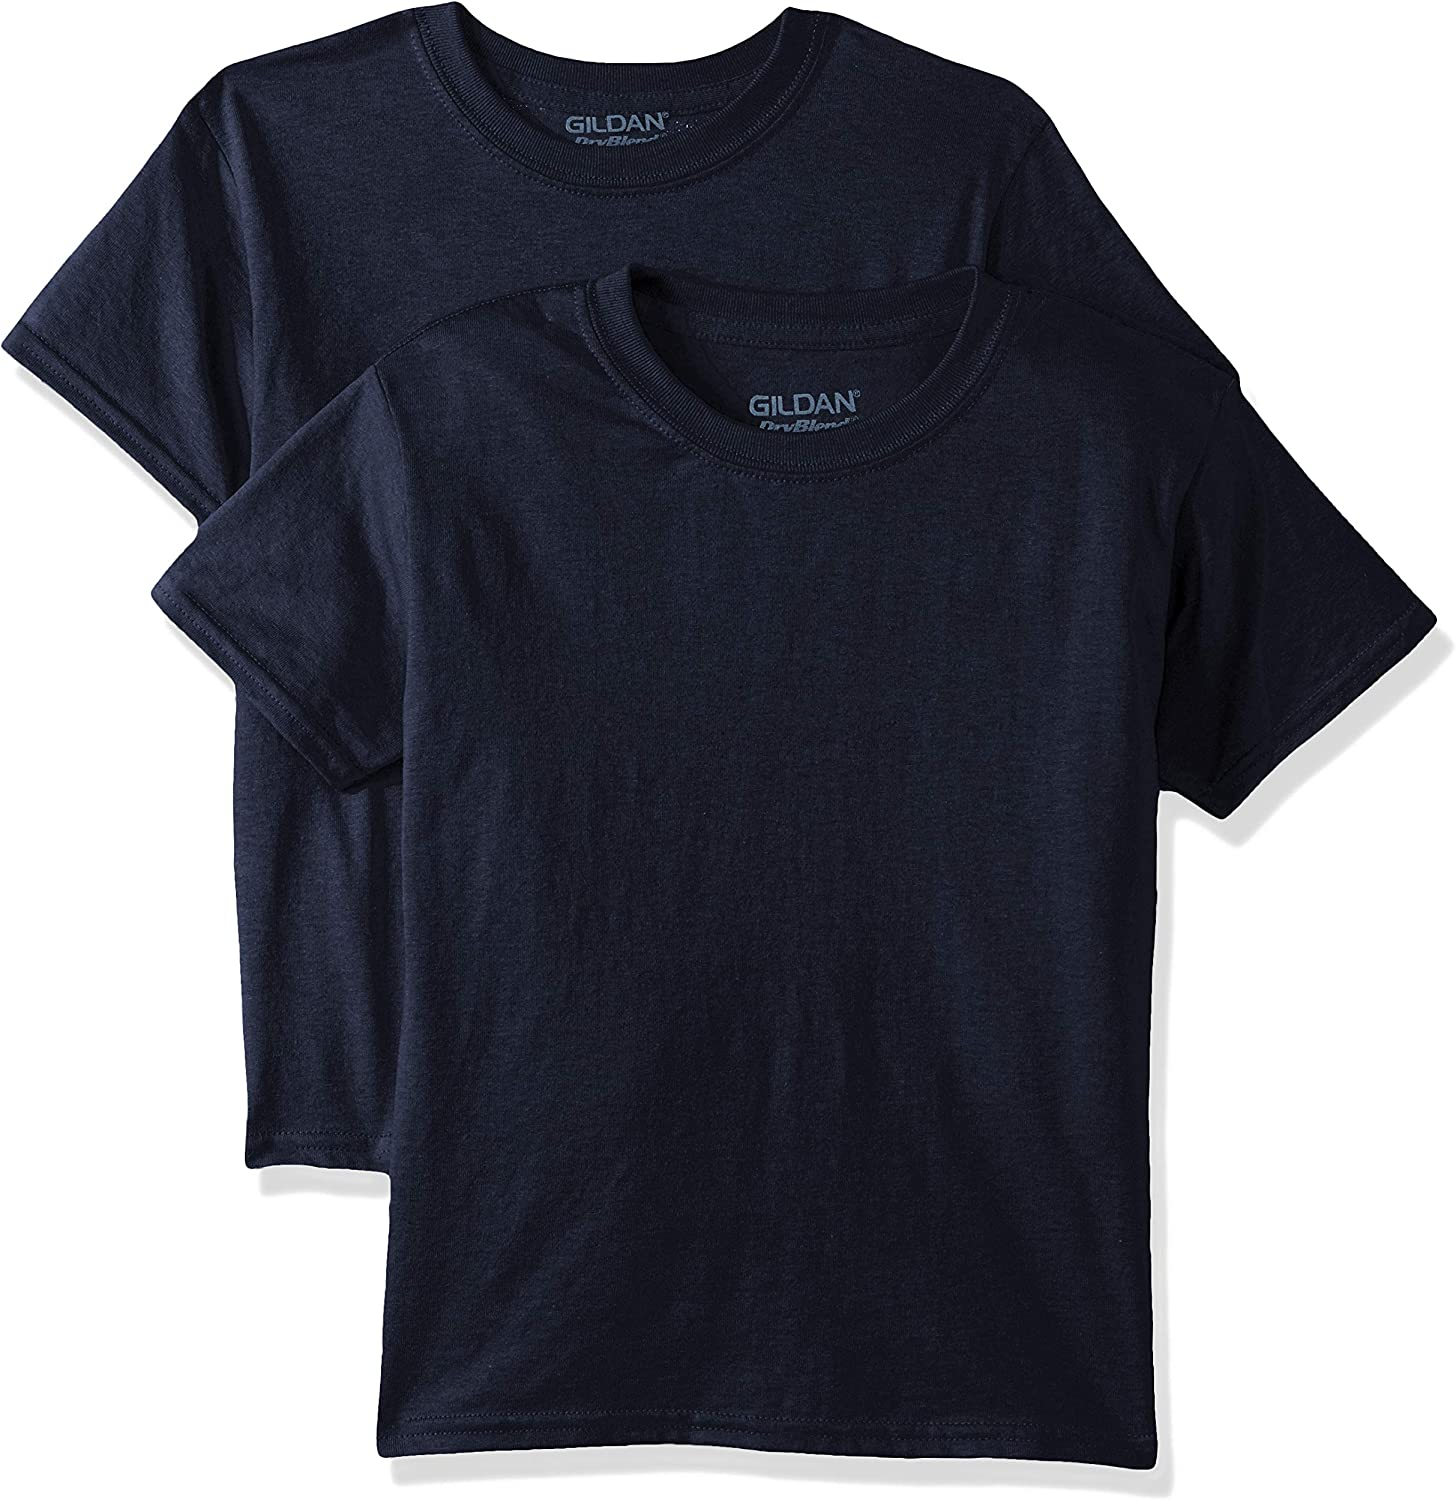 Gildan Kids' Big DryBlend Youth T-Shirt, 2-Pack